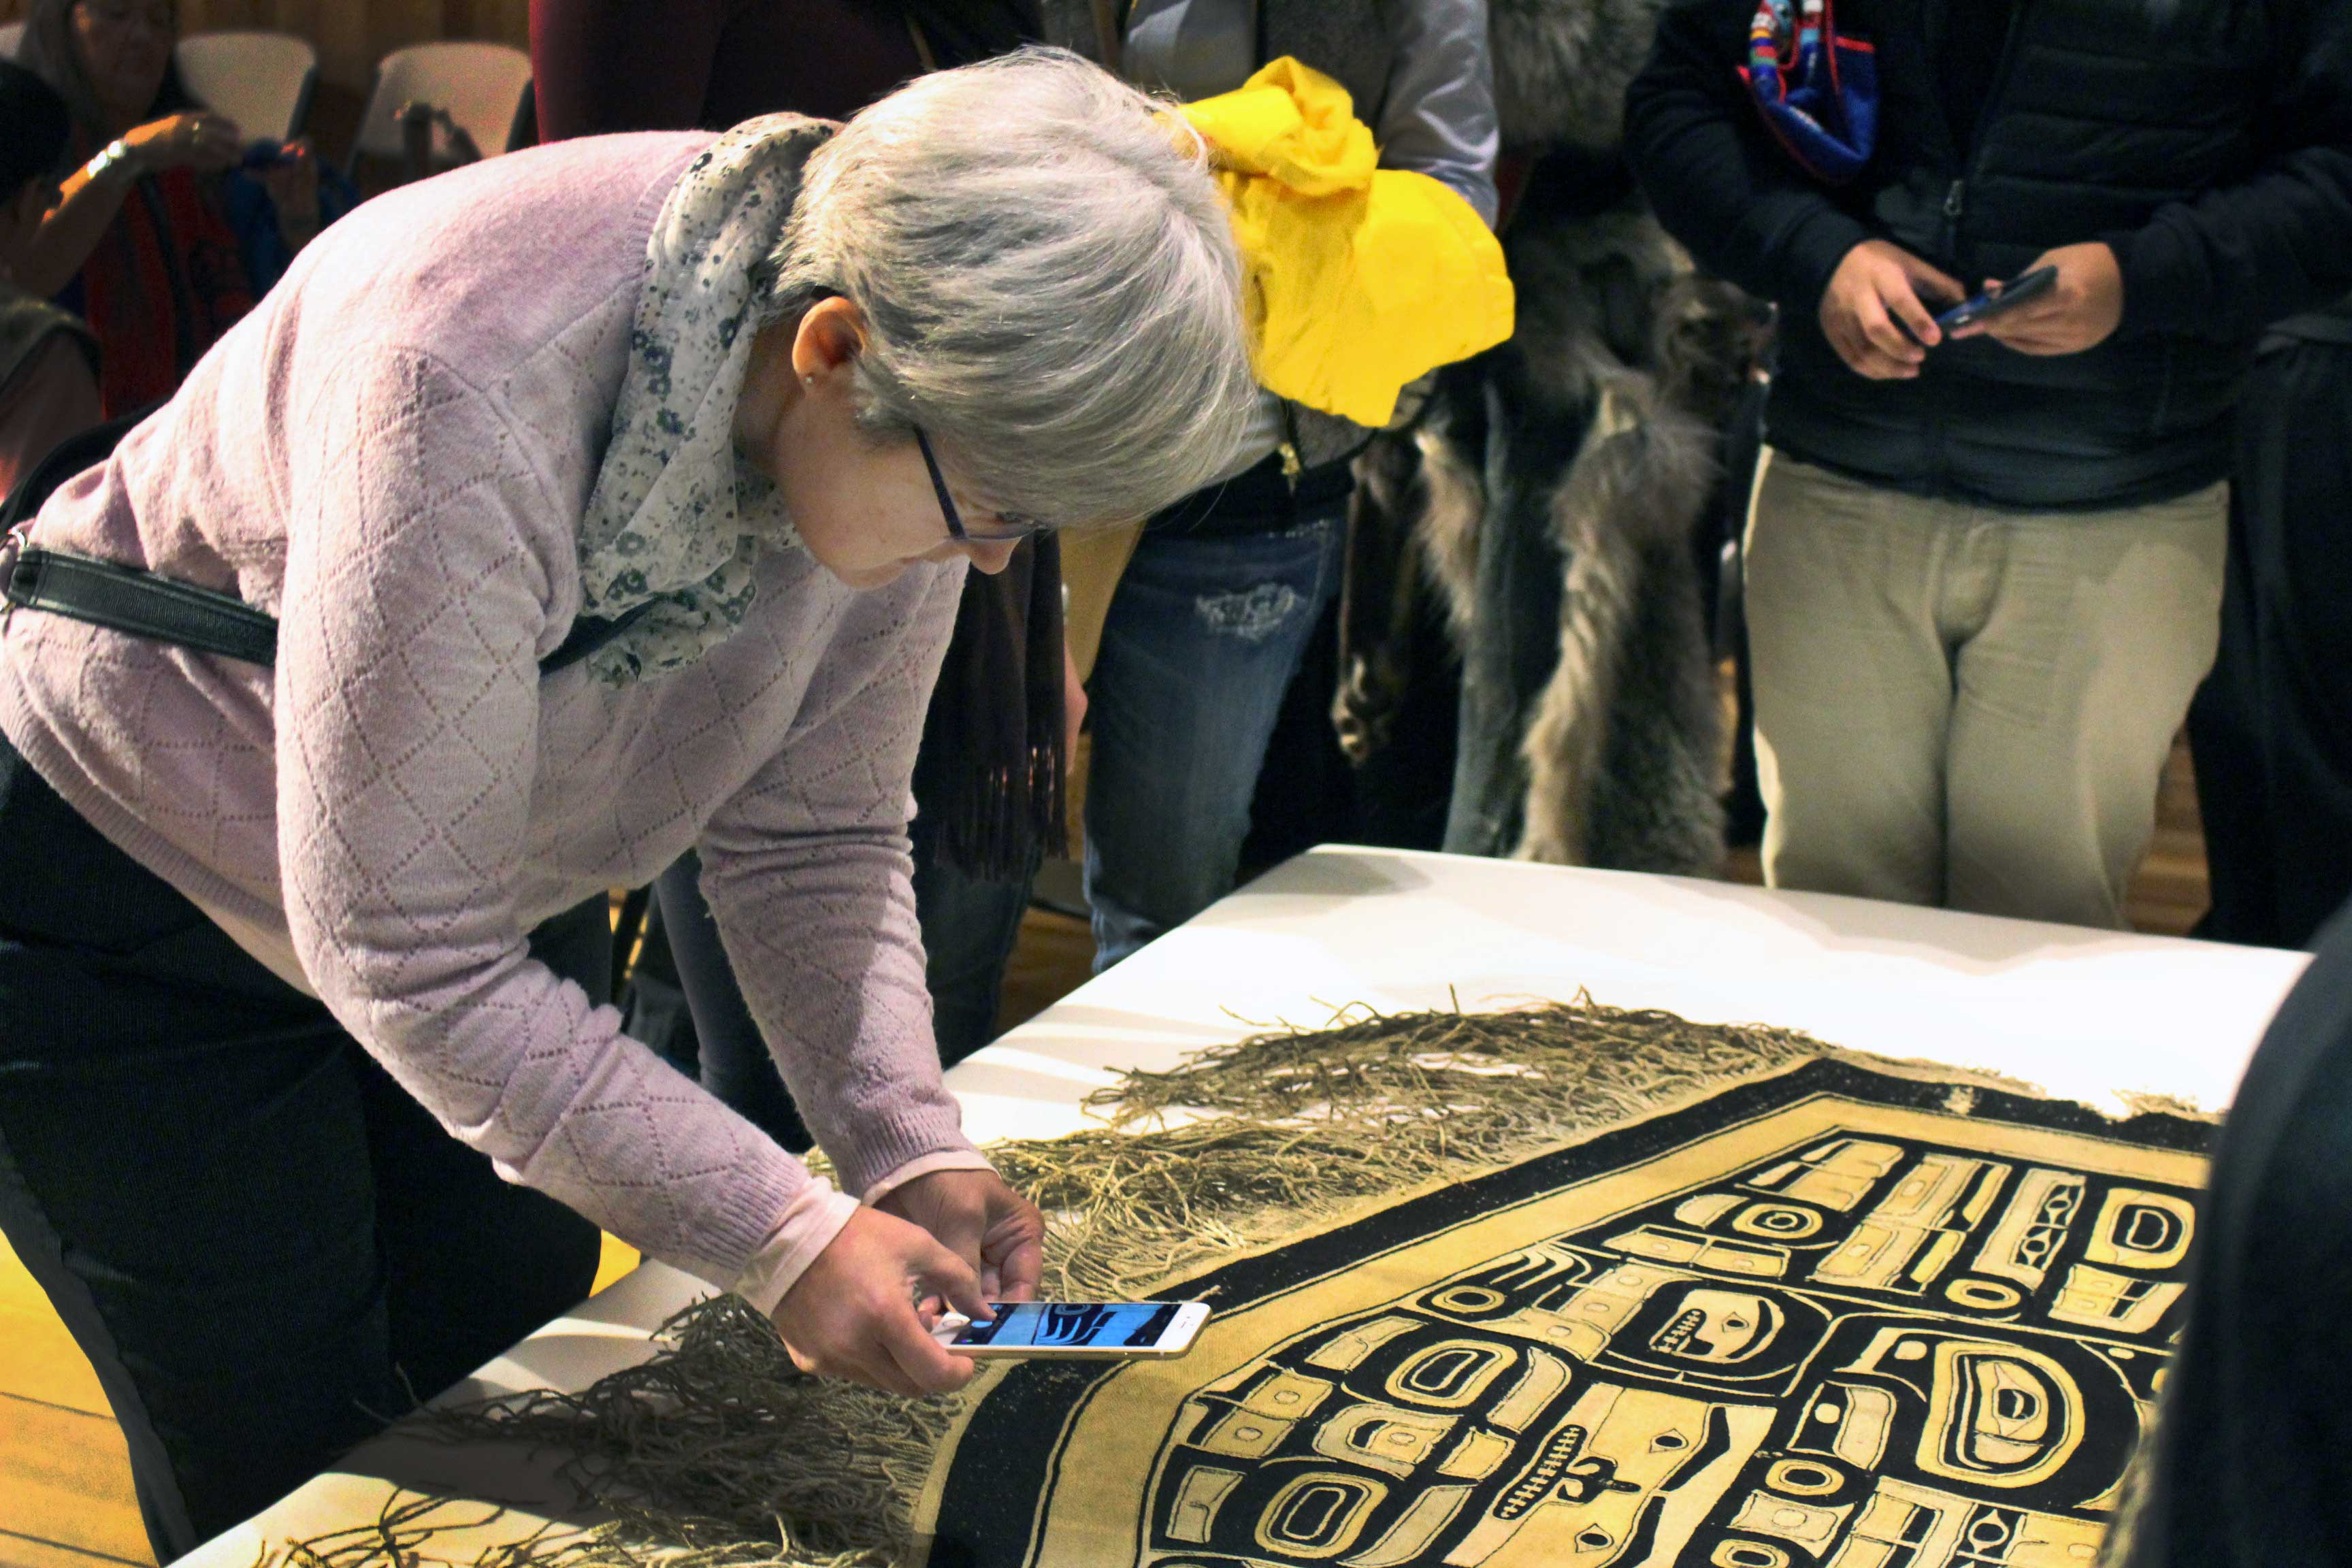 The Sealaska Heritage Institute recently acquired a Chilkat robe believed to be a funerary object. (Photo by Elizabeth Jenkins/KTOO